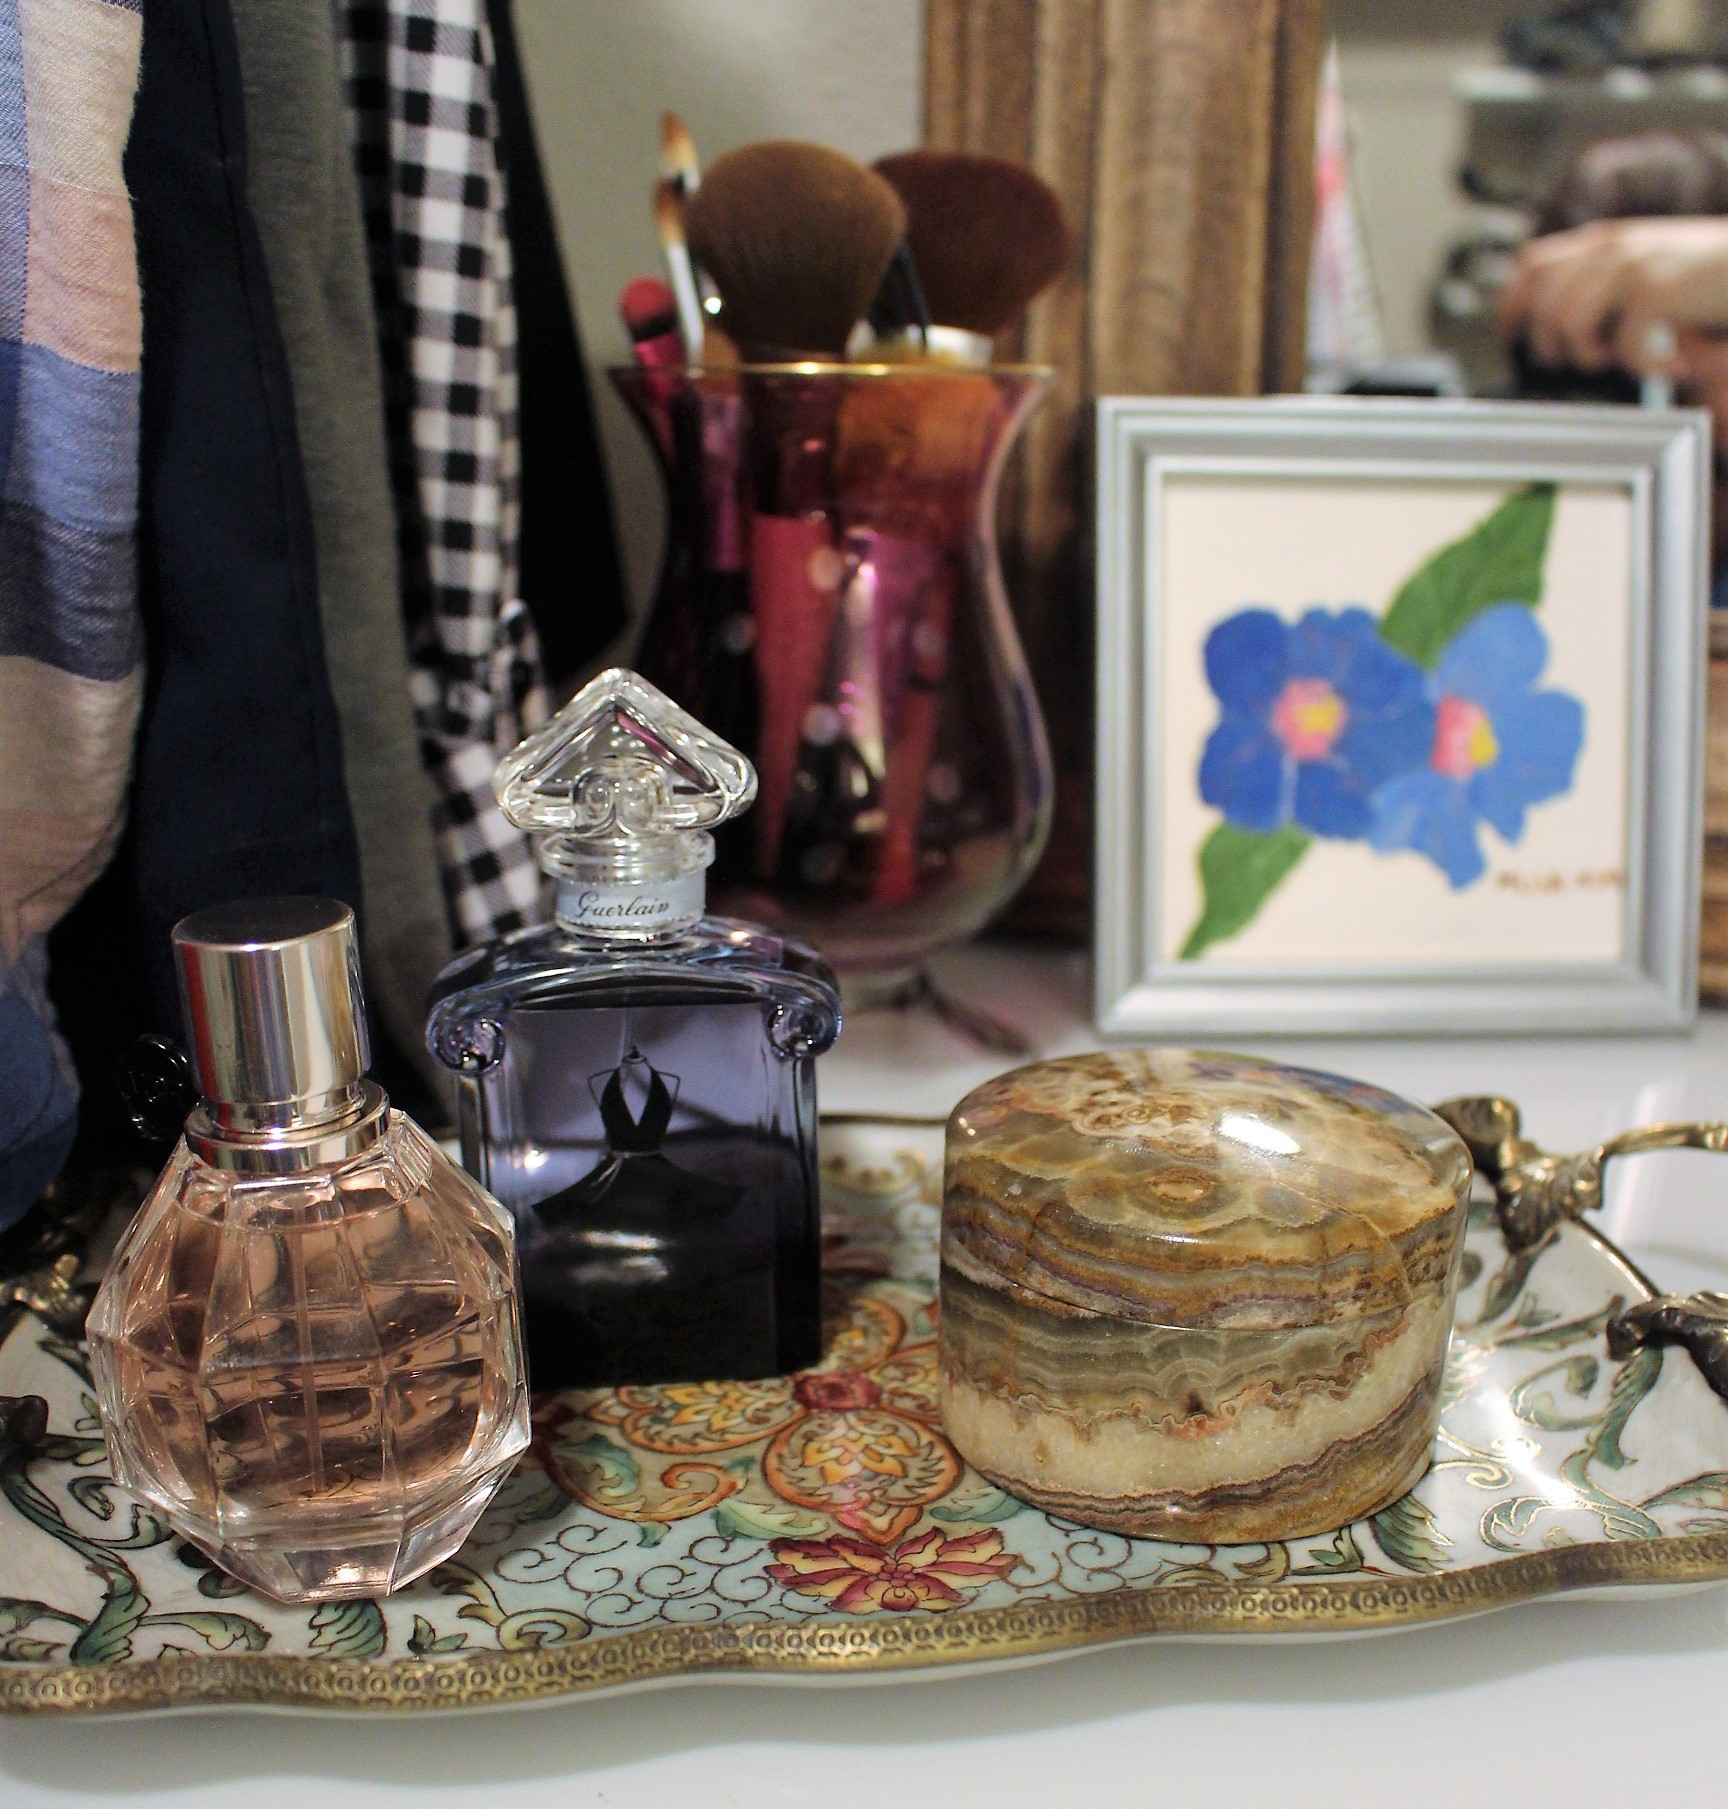 Perfume bottles make the perfect closet decor accessories!  I keep the ones I typically wear on my dresser and others hanging on the wall.